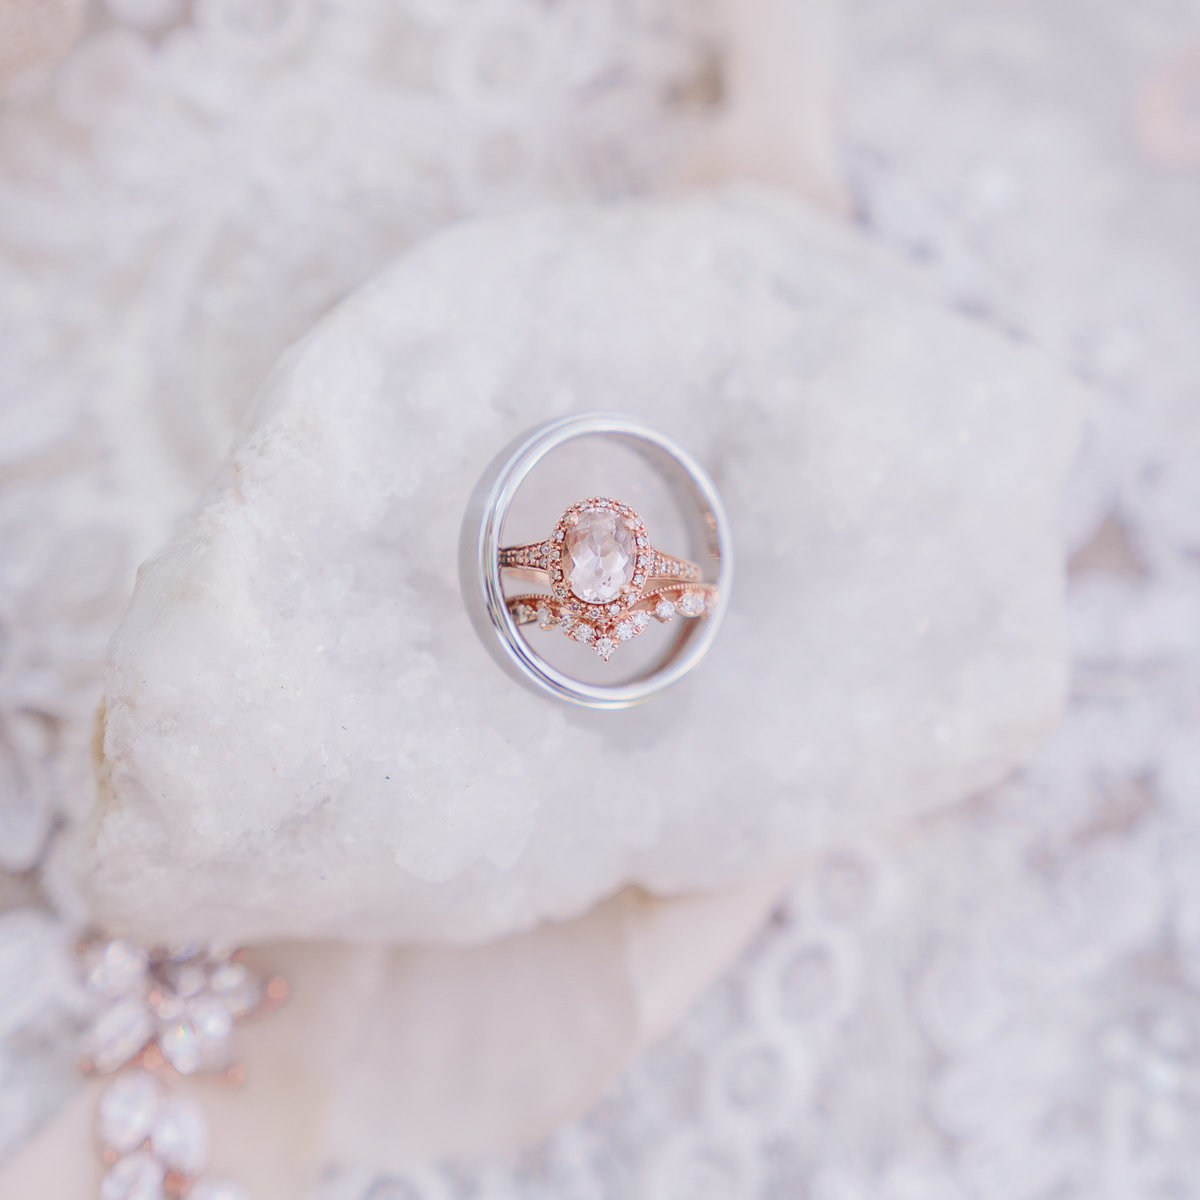 misty farm bride groom wedding rings ann arbor mi